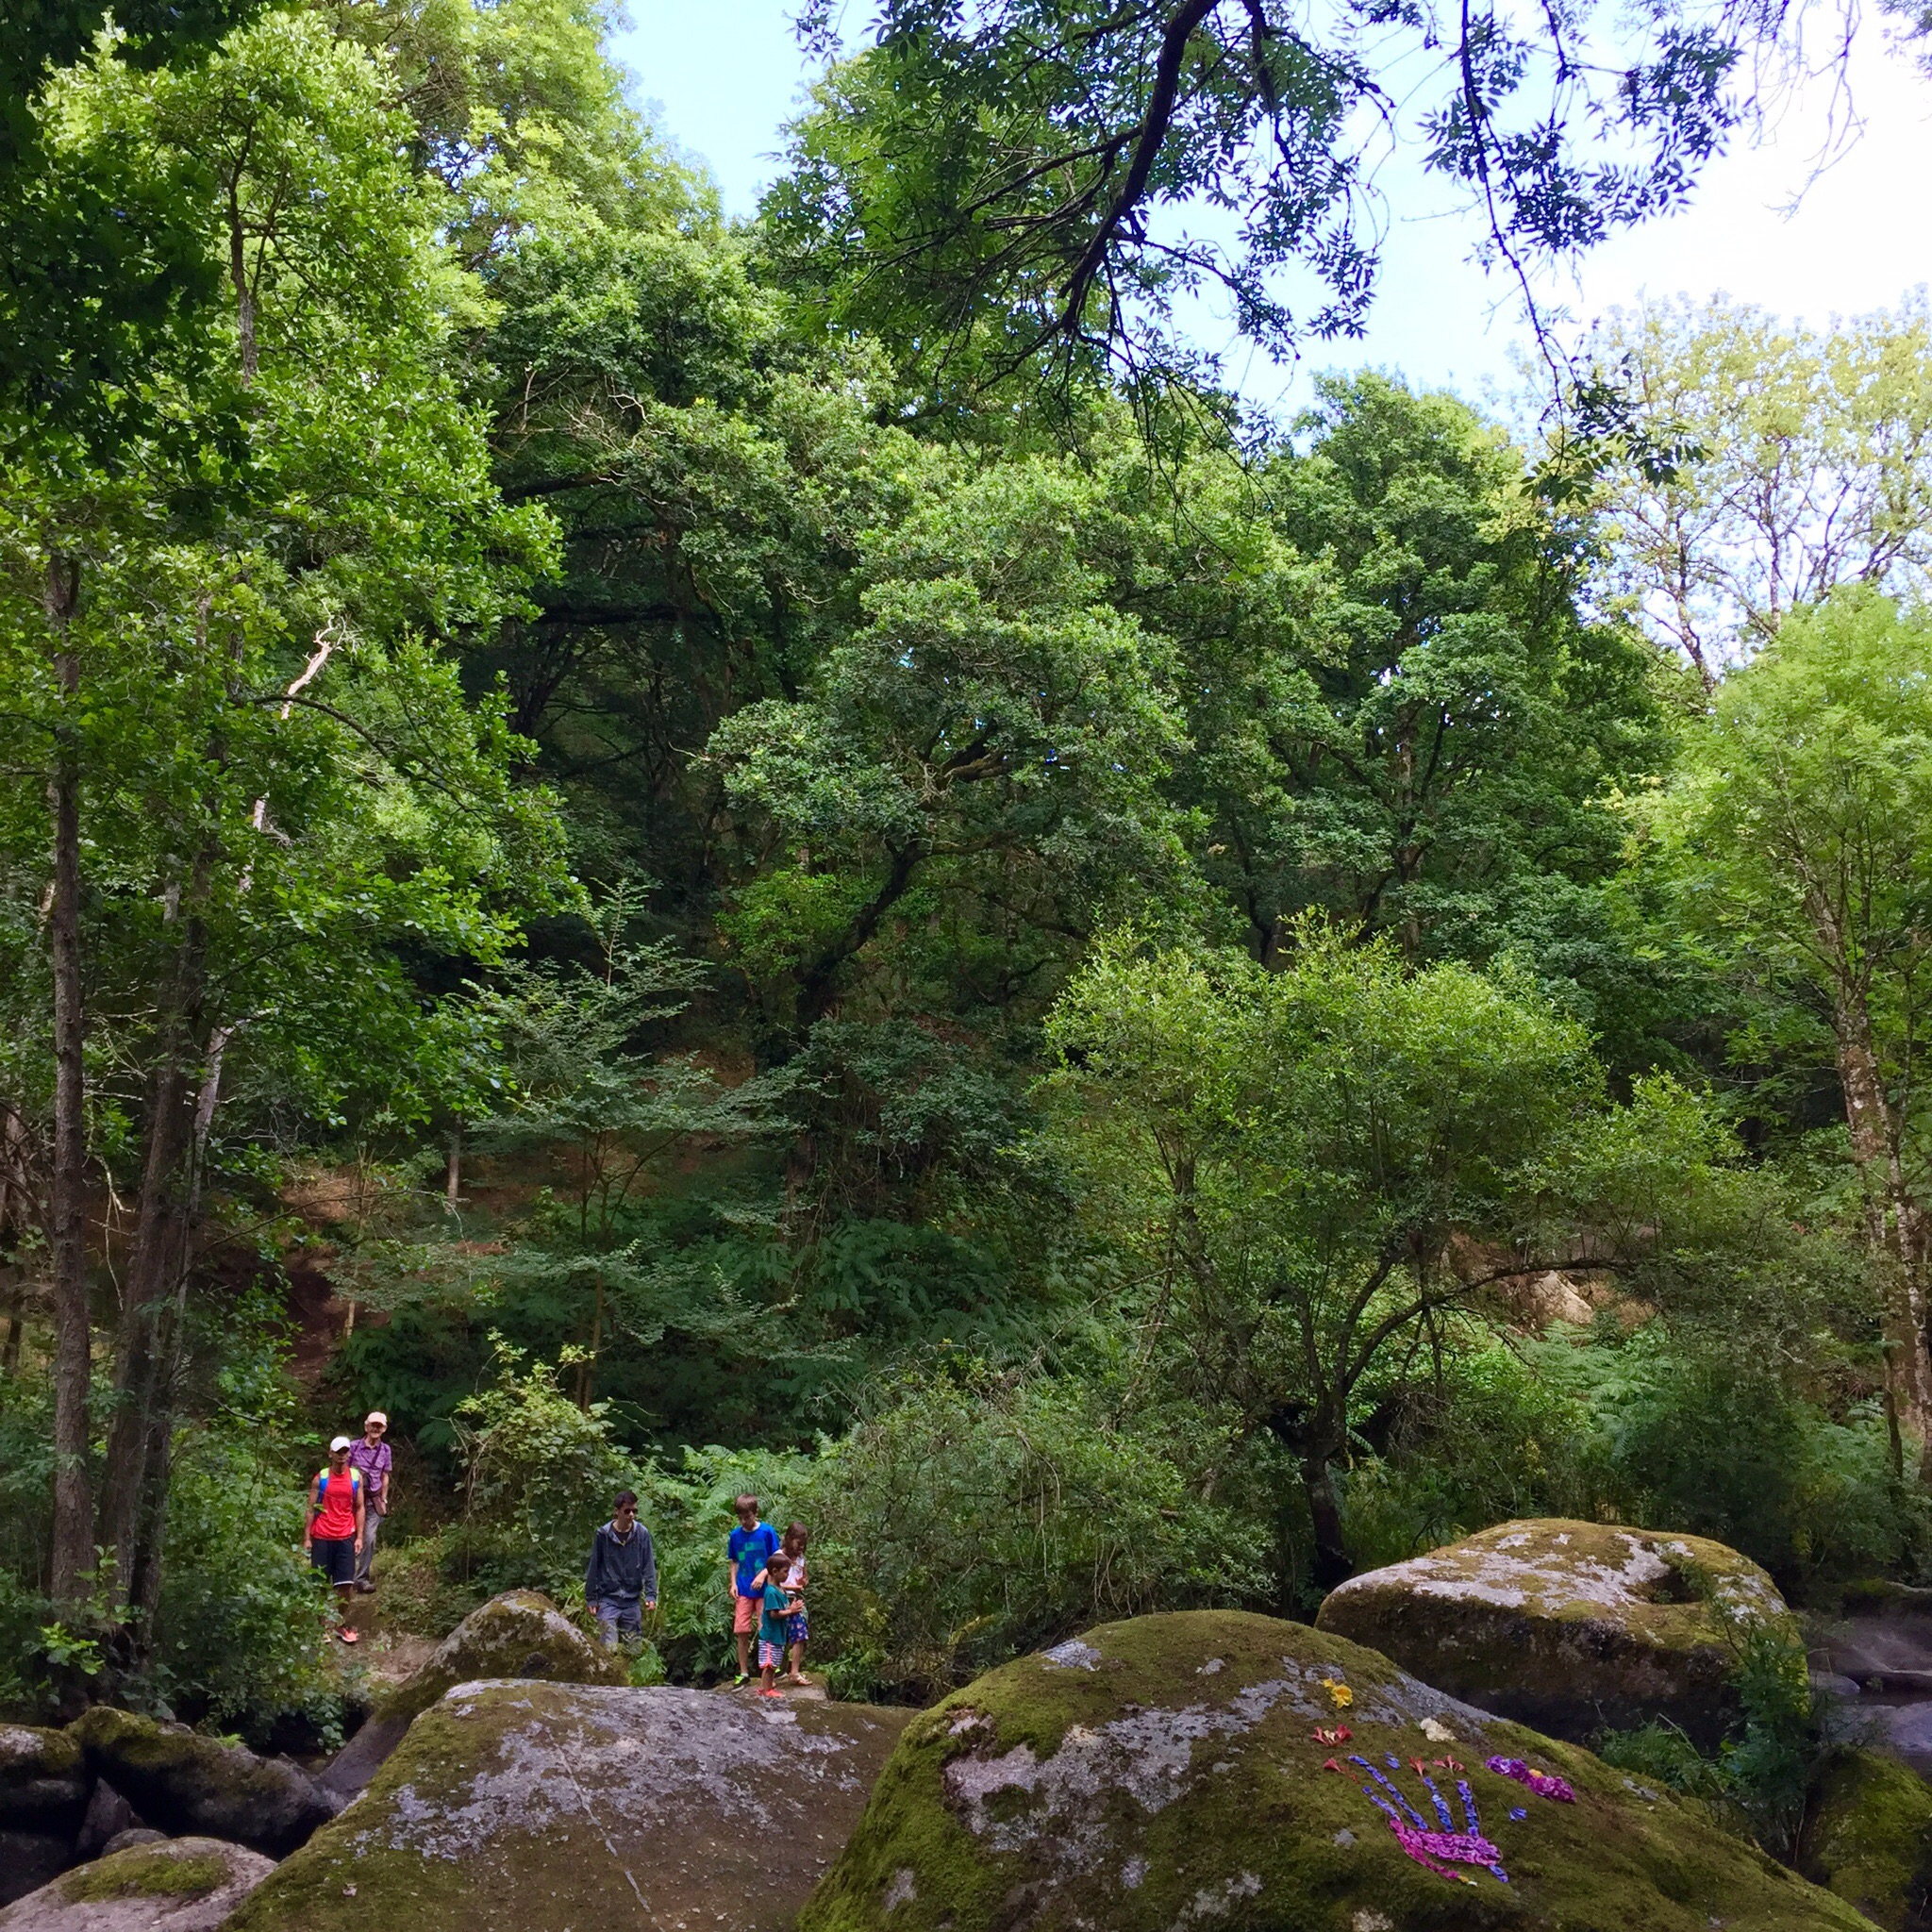 My husband, kids, and family hiking among the rocks in Brittany